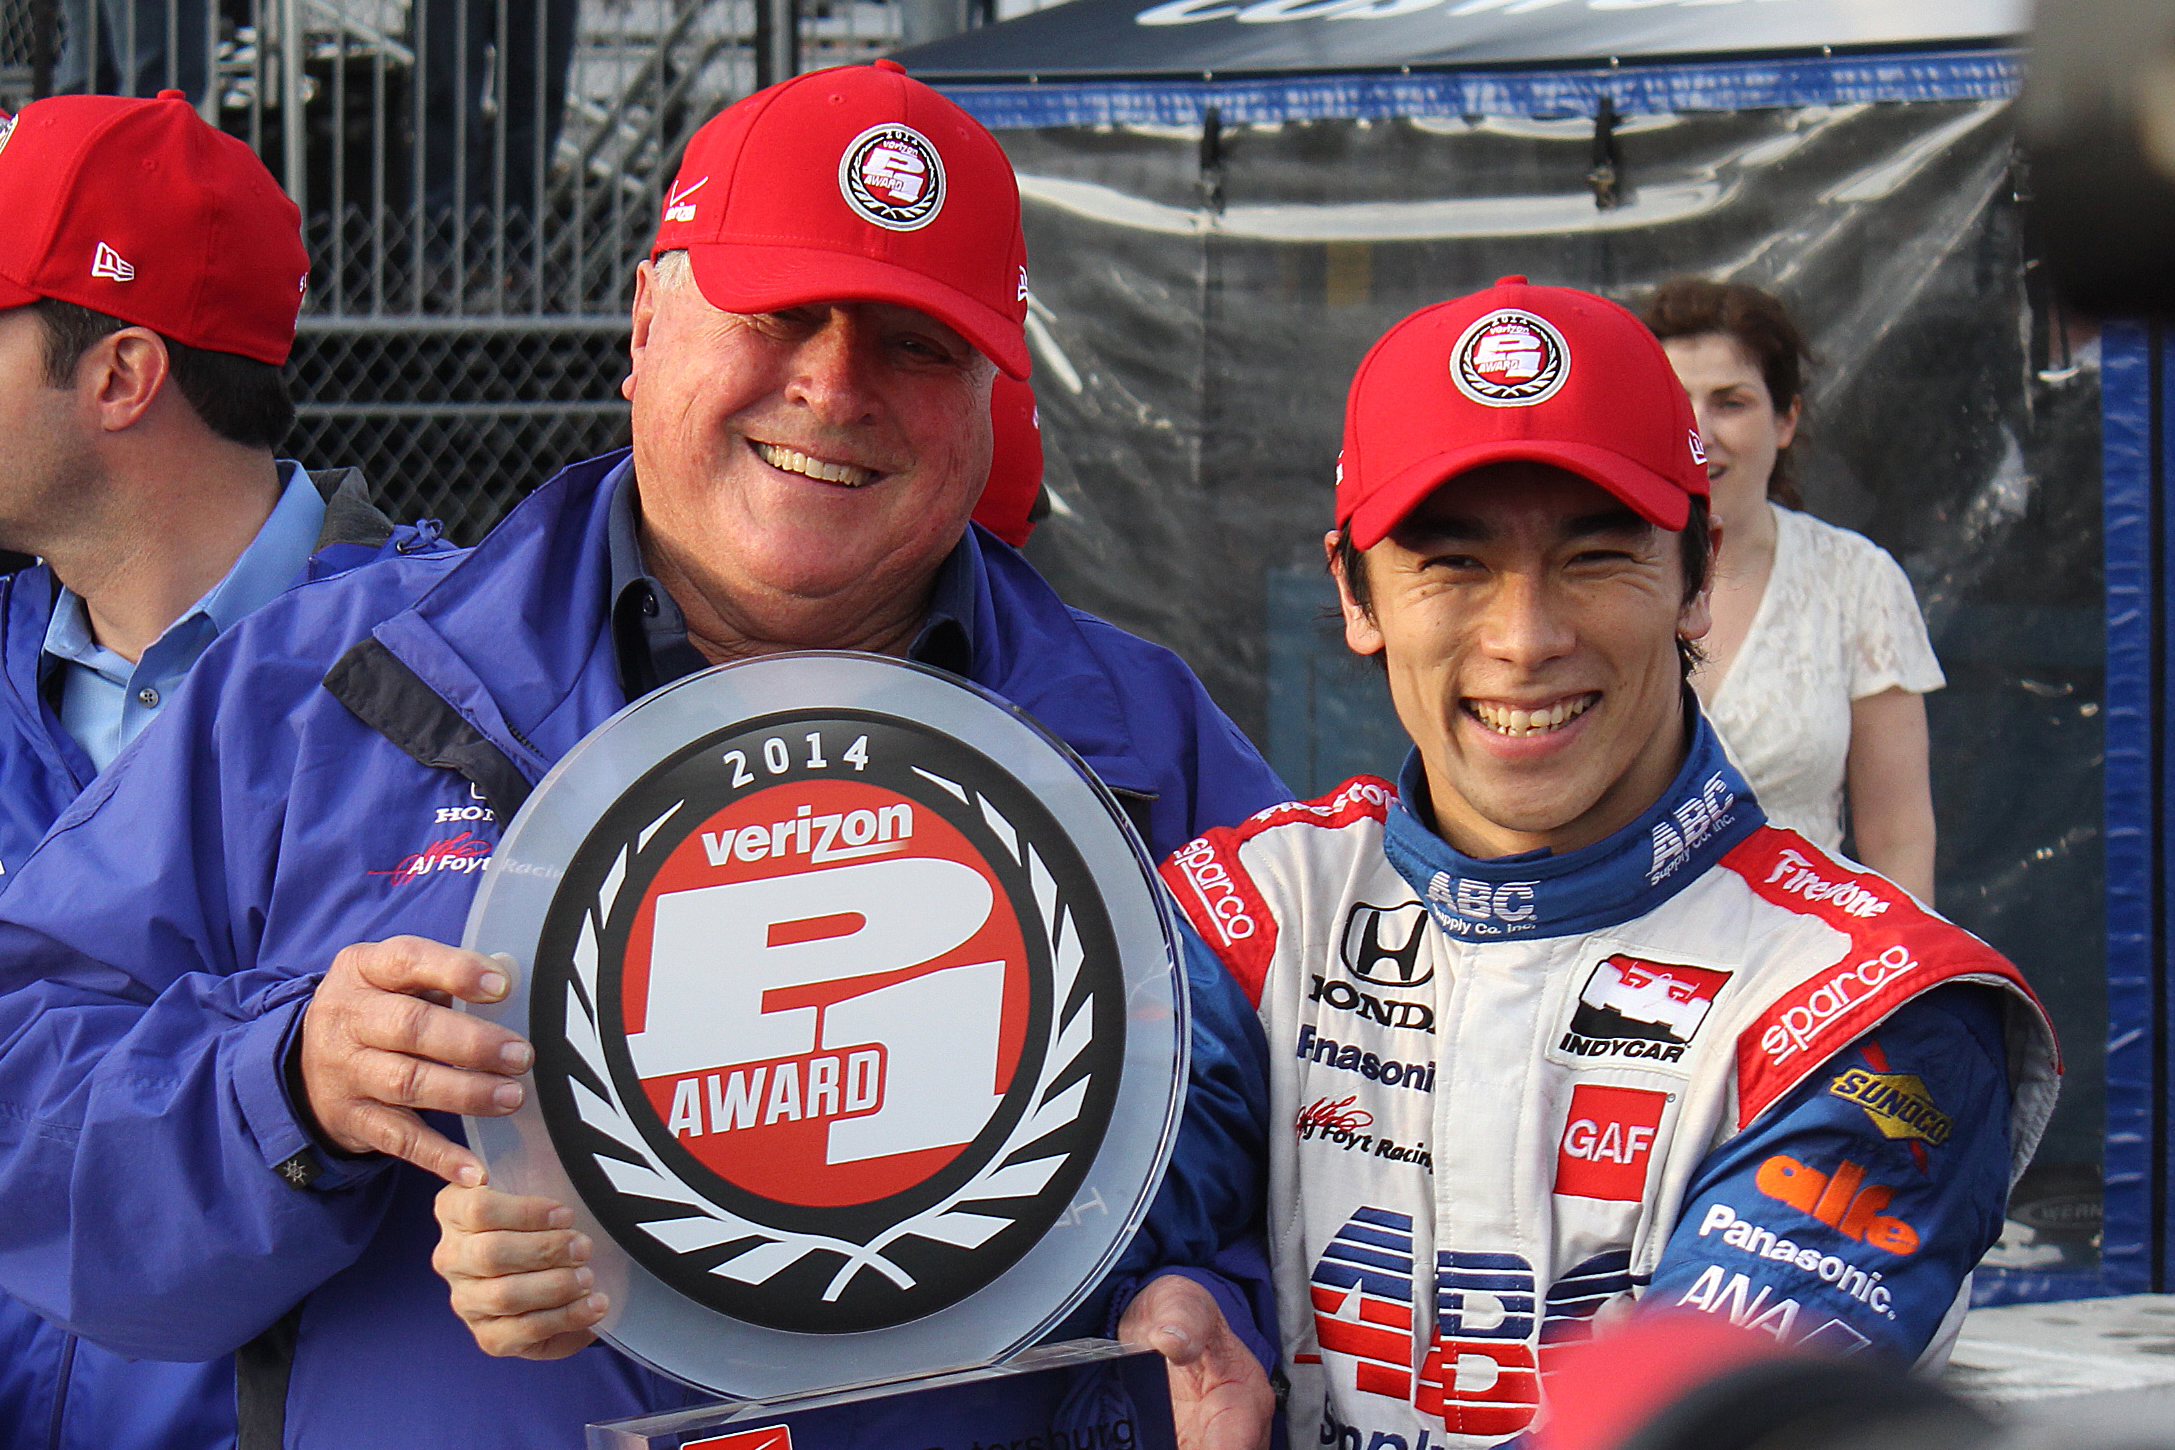 AJ Foyt and Takuma Sato share the Verizon P1 Pole Award after Sato scored the pole for the St. Pete Grand Prix. (Chris Jasurek/Epoch Times)